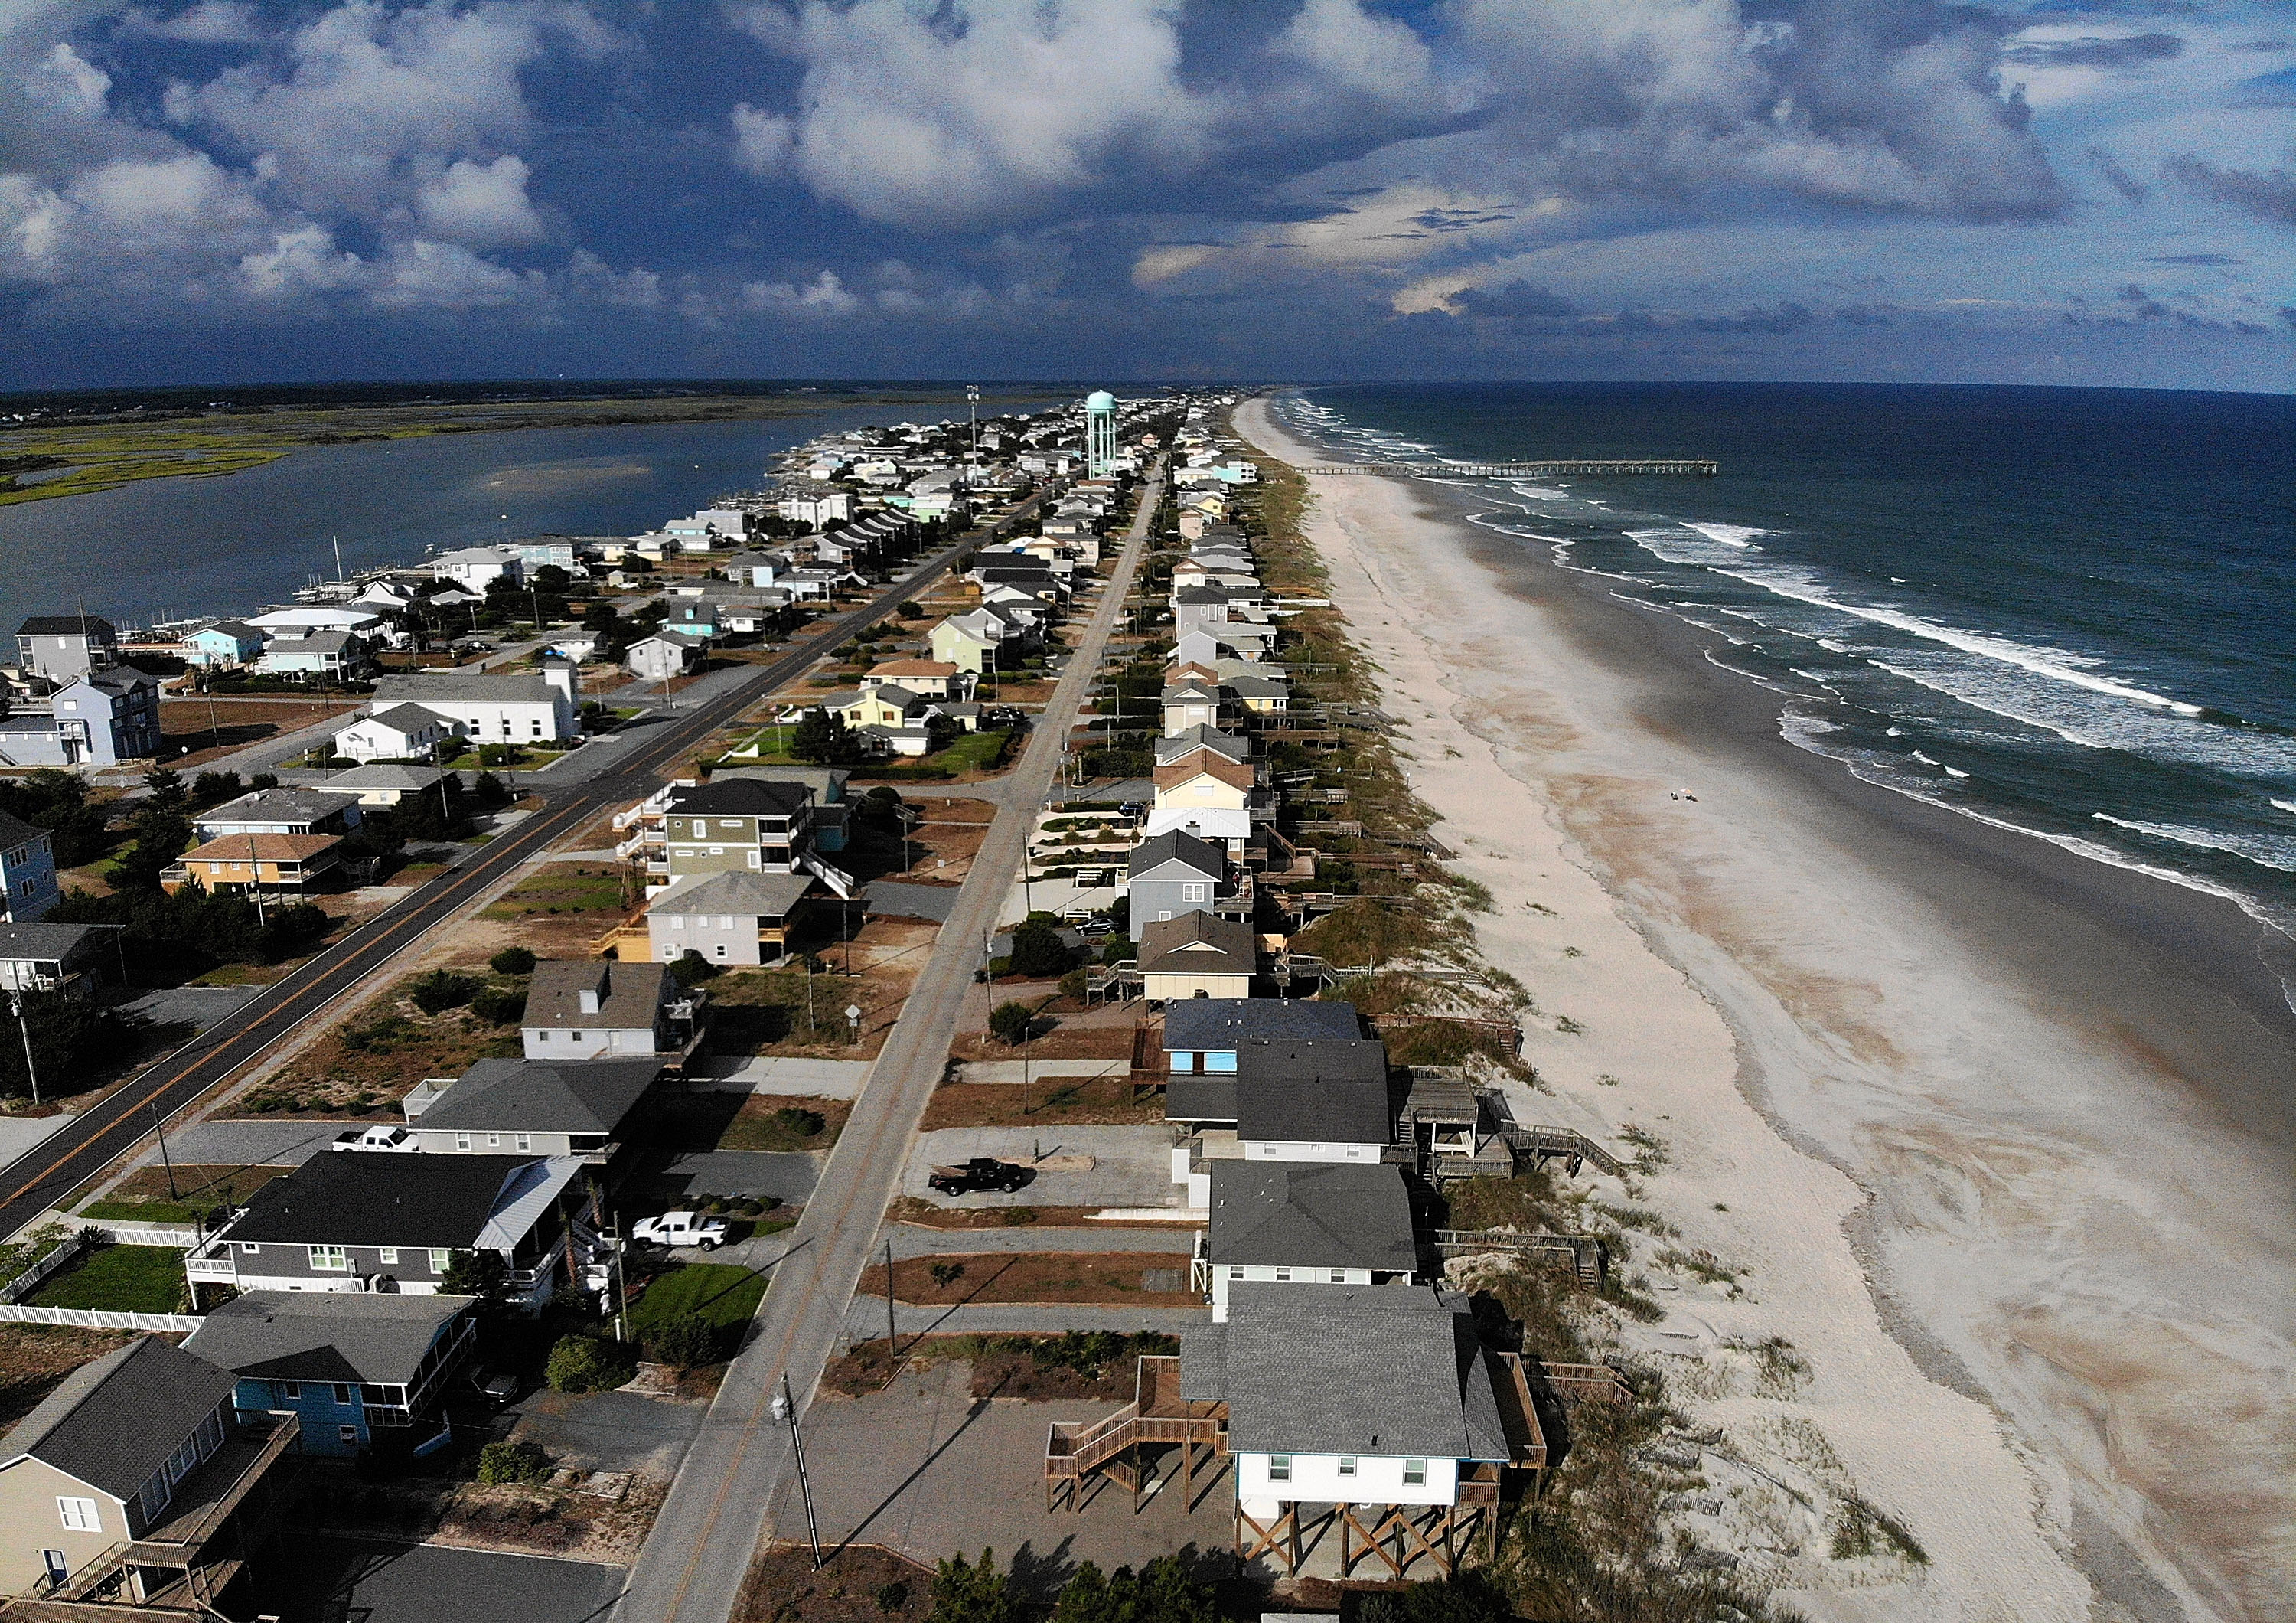 A mandatory evacuation is in effect in preparation of the approaching Hurricane Florence, on September 11, 2018 in Topsail Beach, North Carolina. Hurricane Florence is expected on Friday possibly as a category 4 storm along the Virginia, North Carolina and South Carolina coastline.